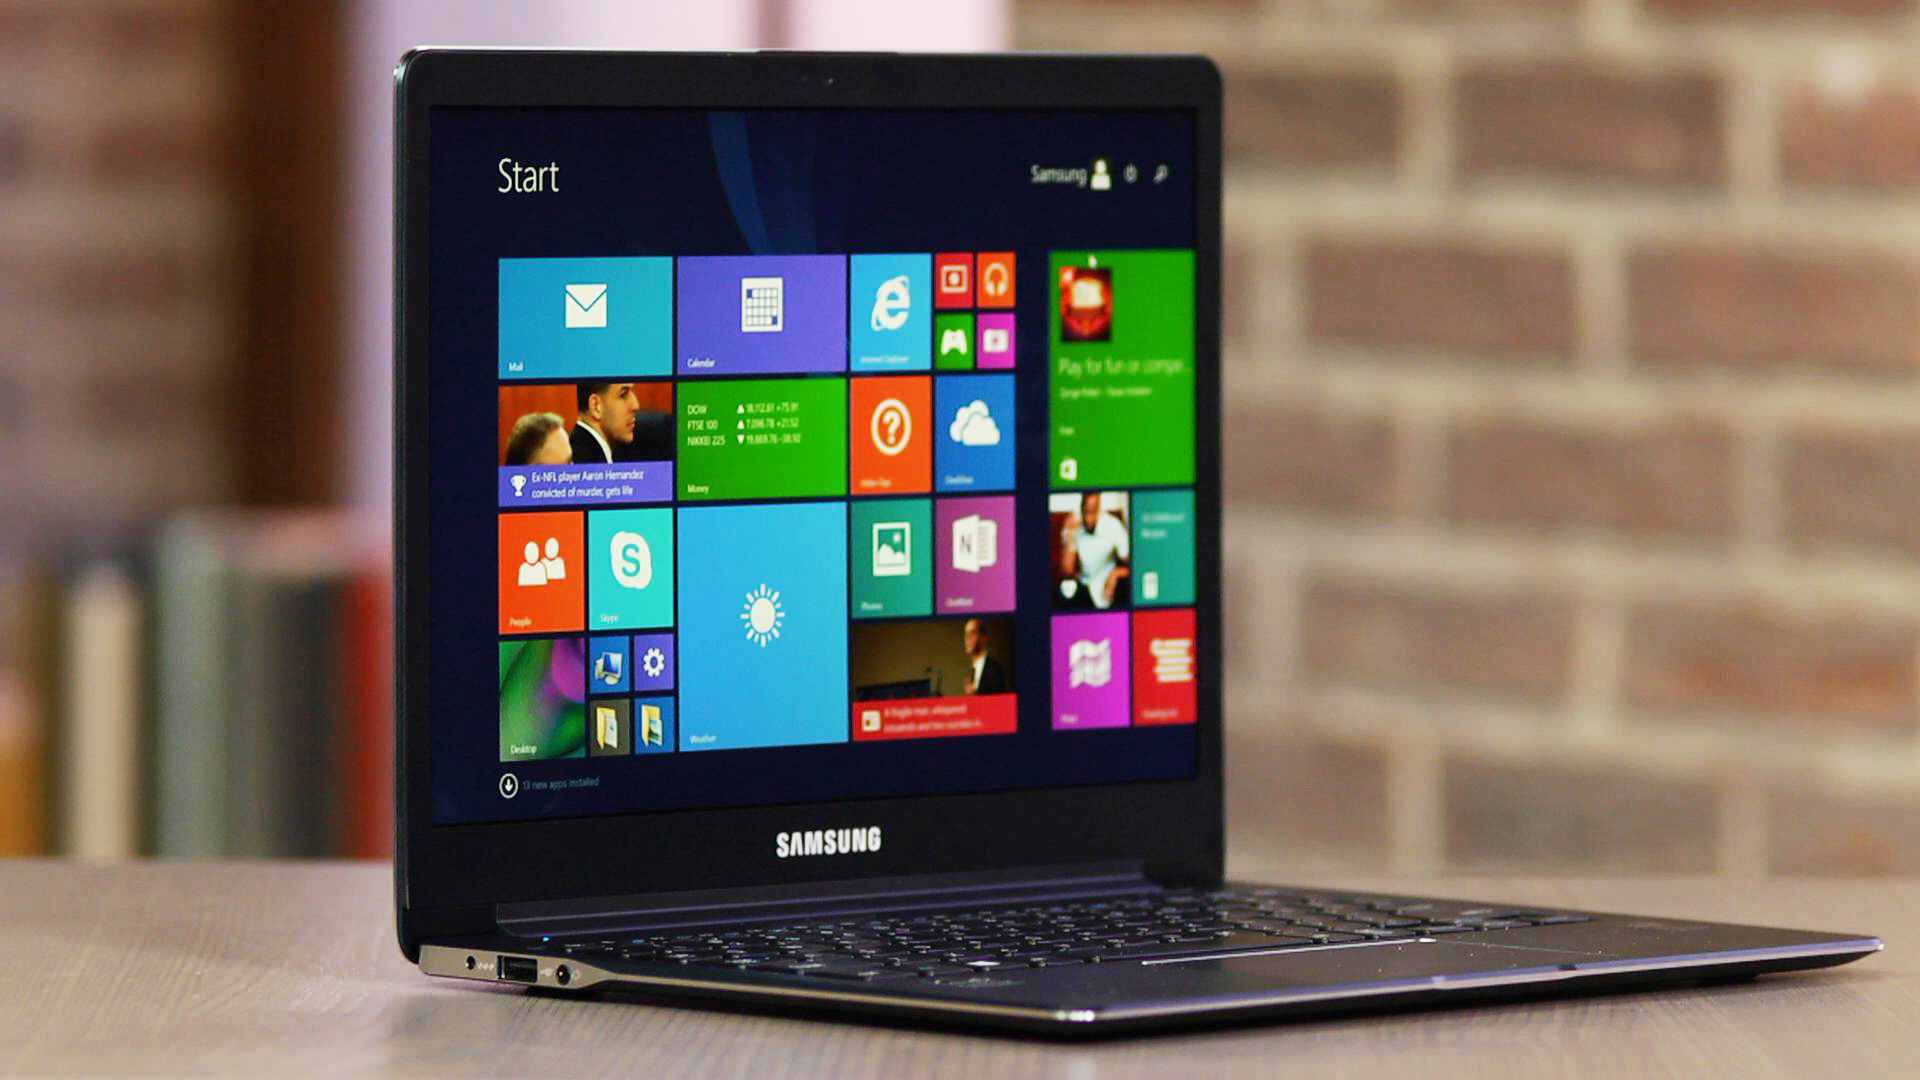 Video: La Samsung Ativ Book 9 de 2015 viene a competir con la nueva MacBook